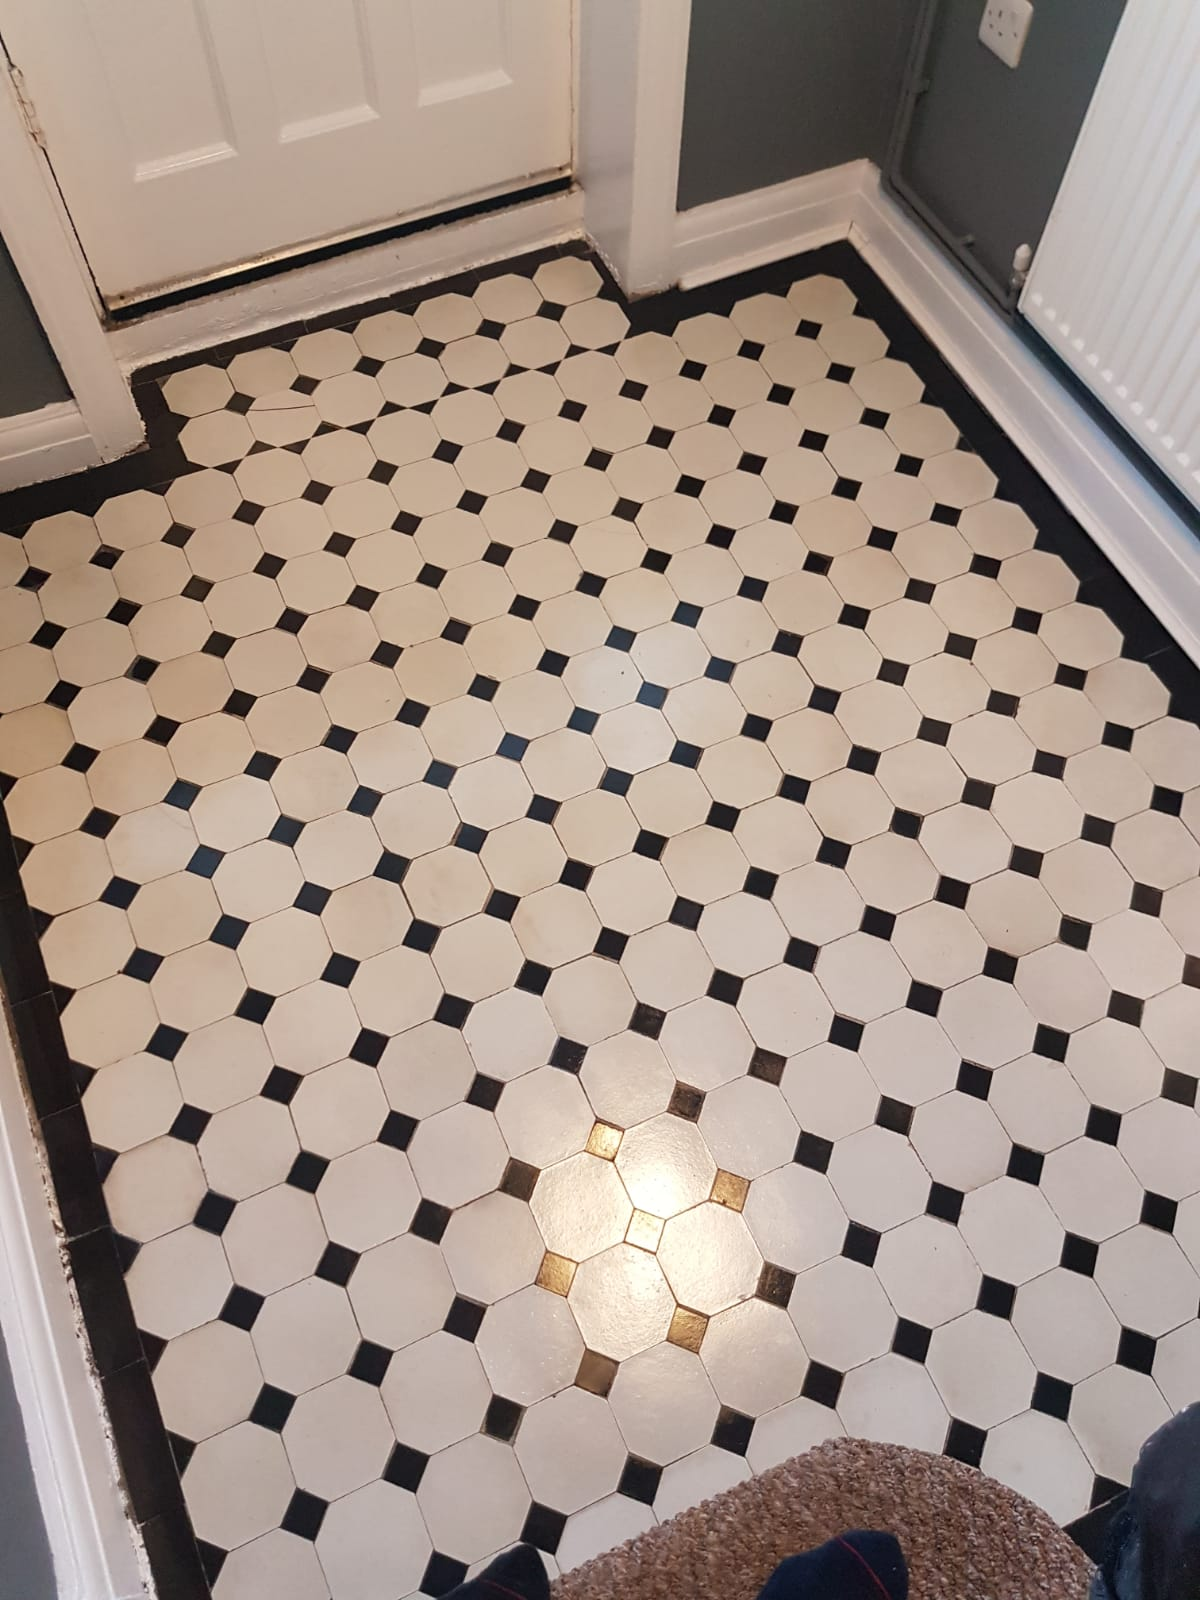 Victorian Tiled Hallway After Cleaning Sealing in Neath